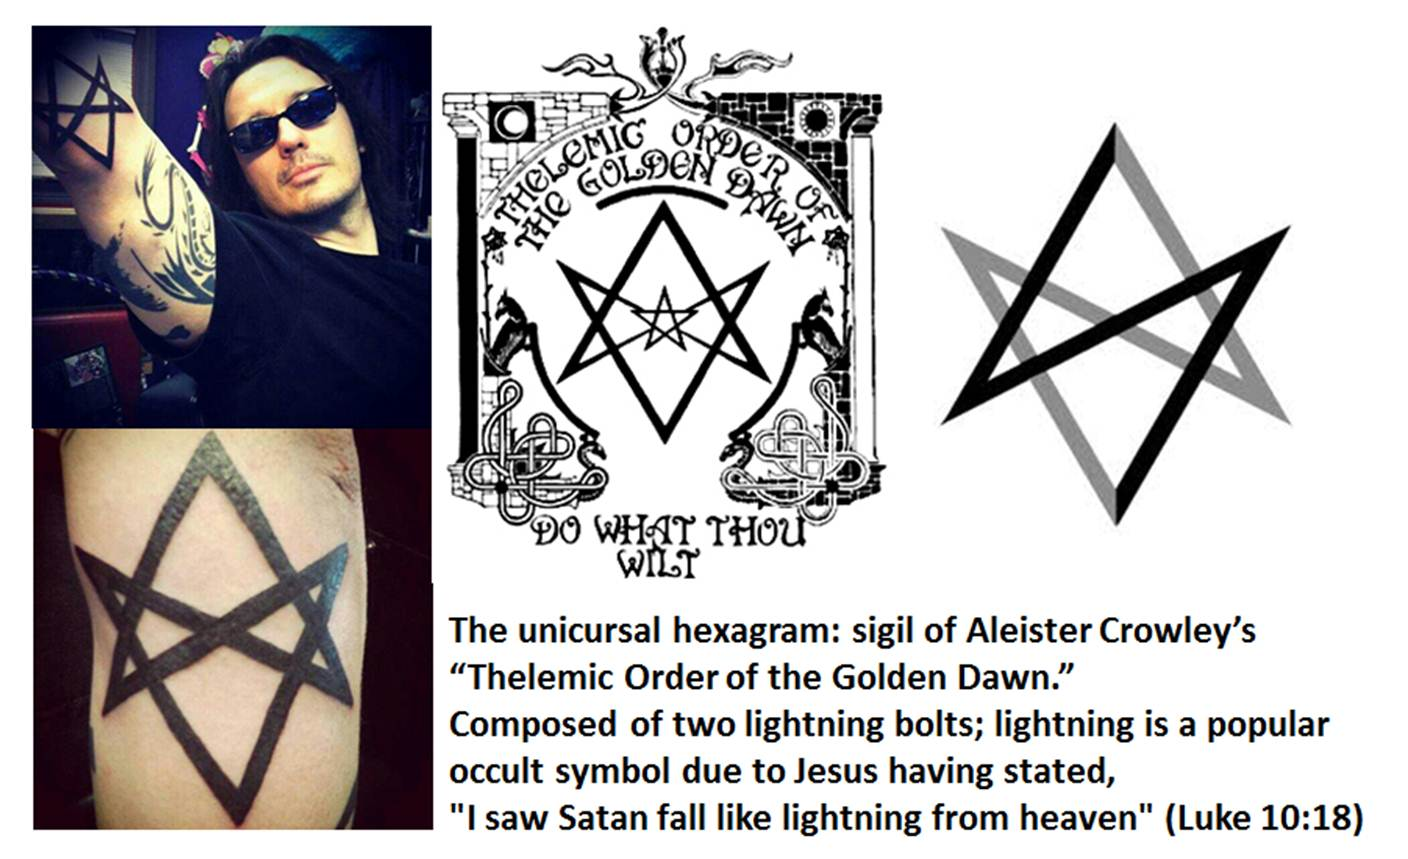 Aleister Crowley Symbolism And Poses True Freethinker